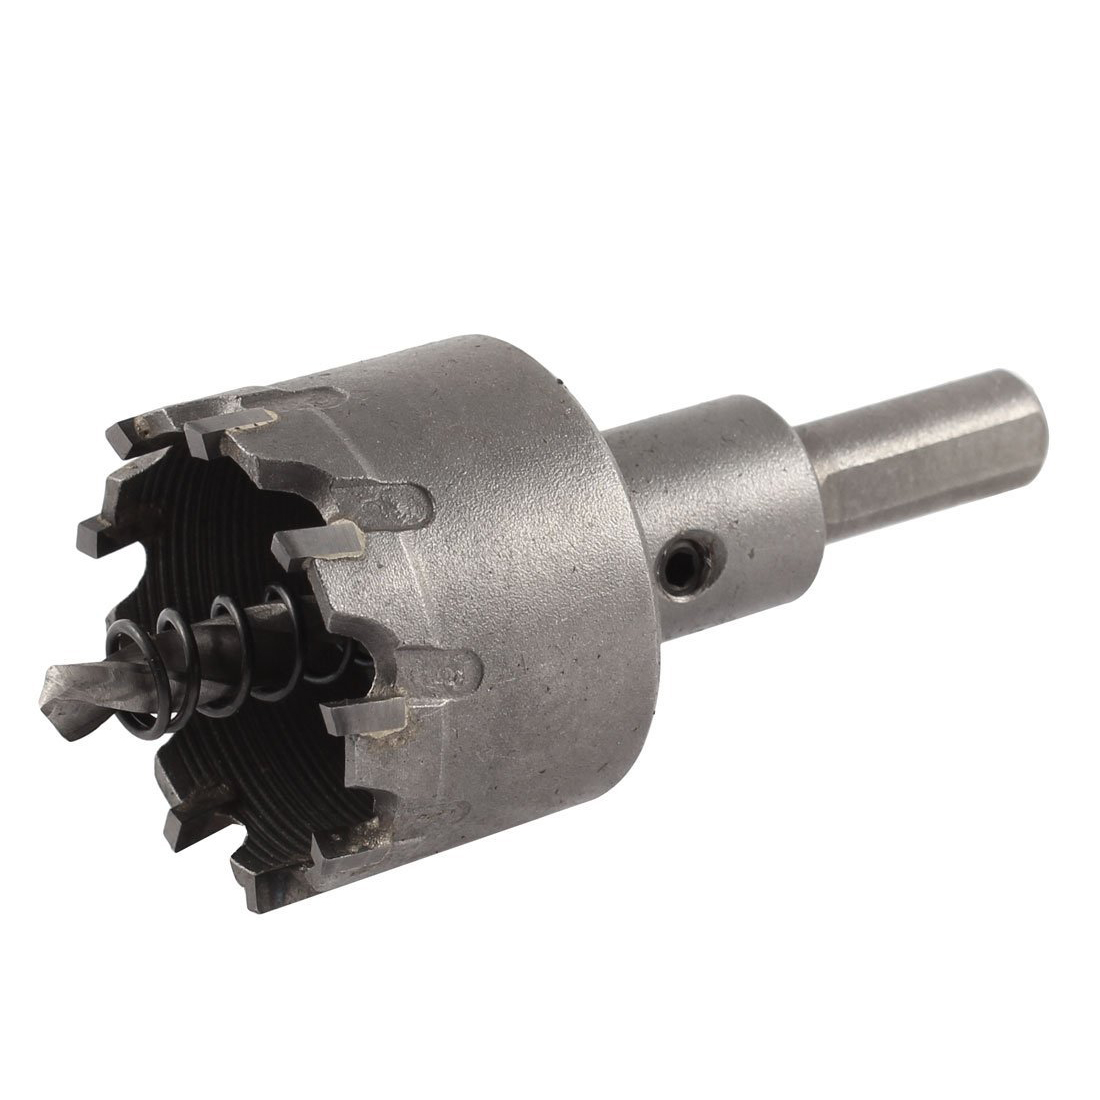 Подробнее о e Shank 6mm Twist Drill Bit 38mm Dia Stainless Steel Hole Saw Cutter uxcell 6mm twist drill bit 21mm cutting dia stainless steel plate hole saw cutter